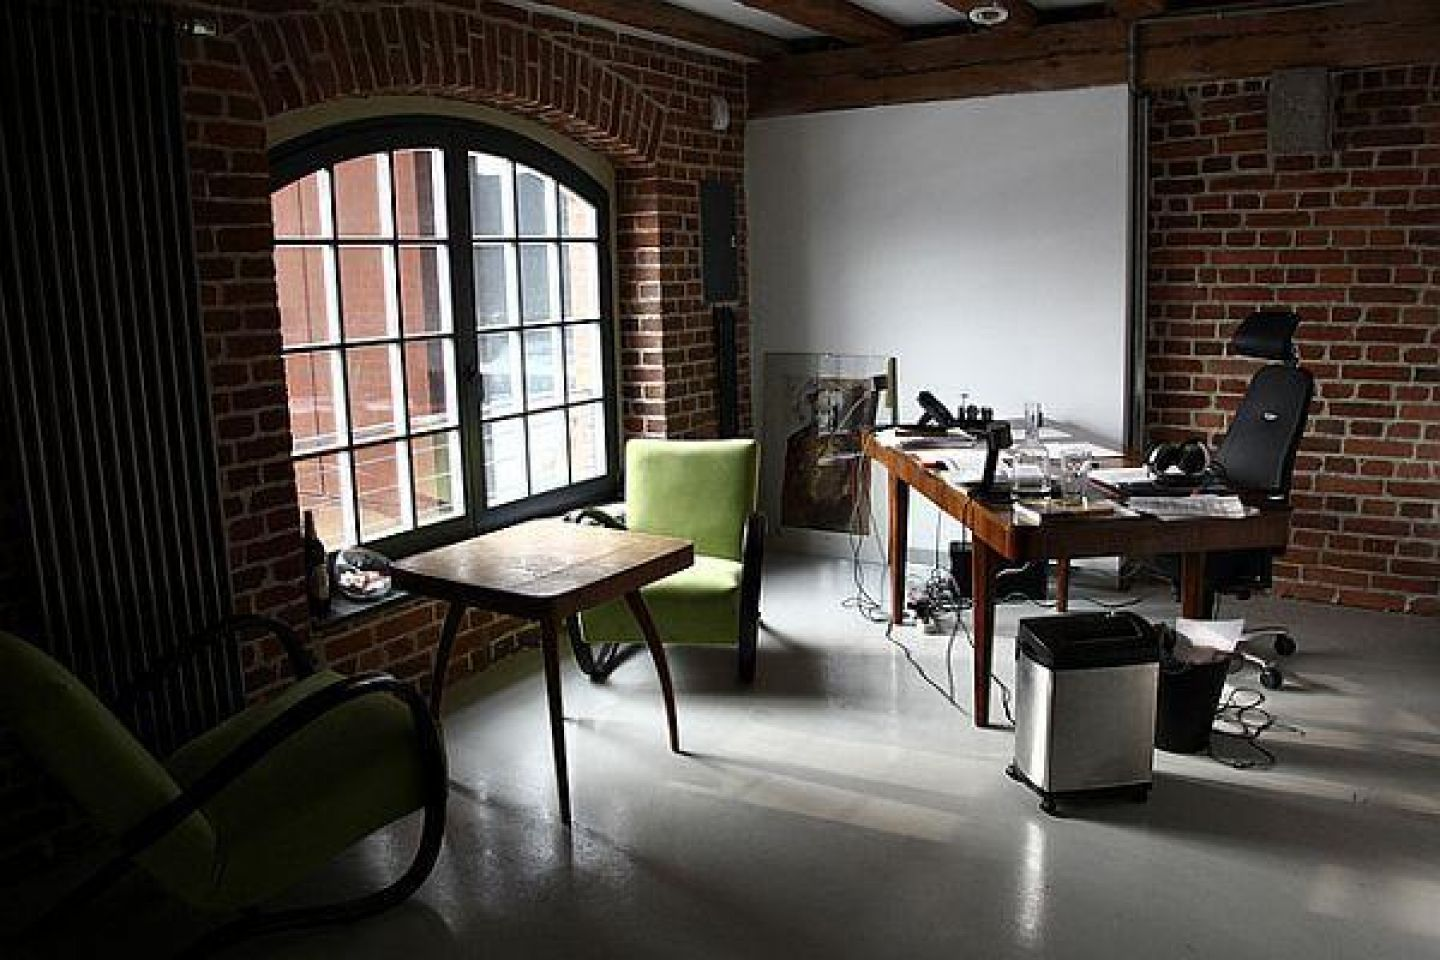 Interior Design Home Office home office interior design ideas i love the brick walls and